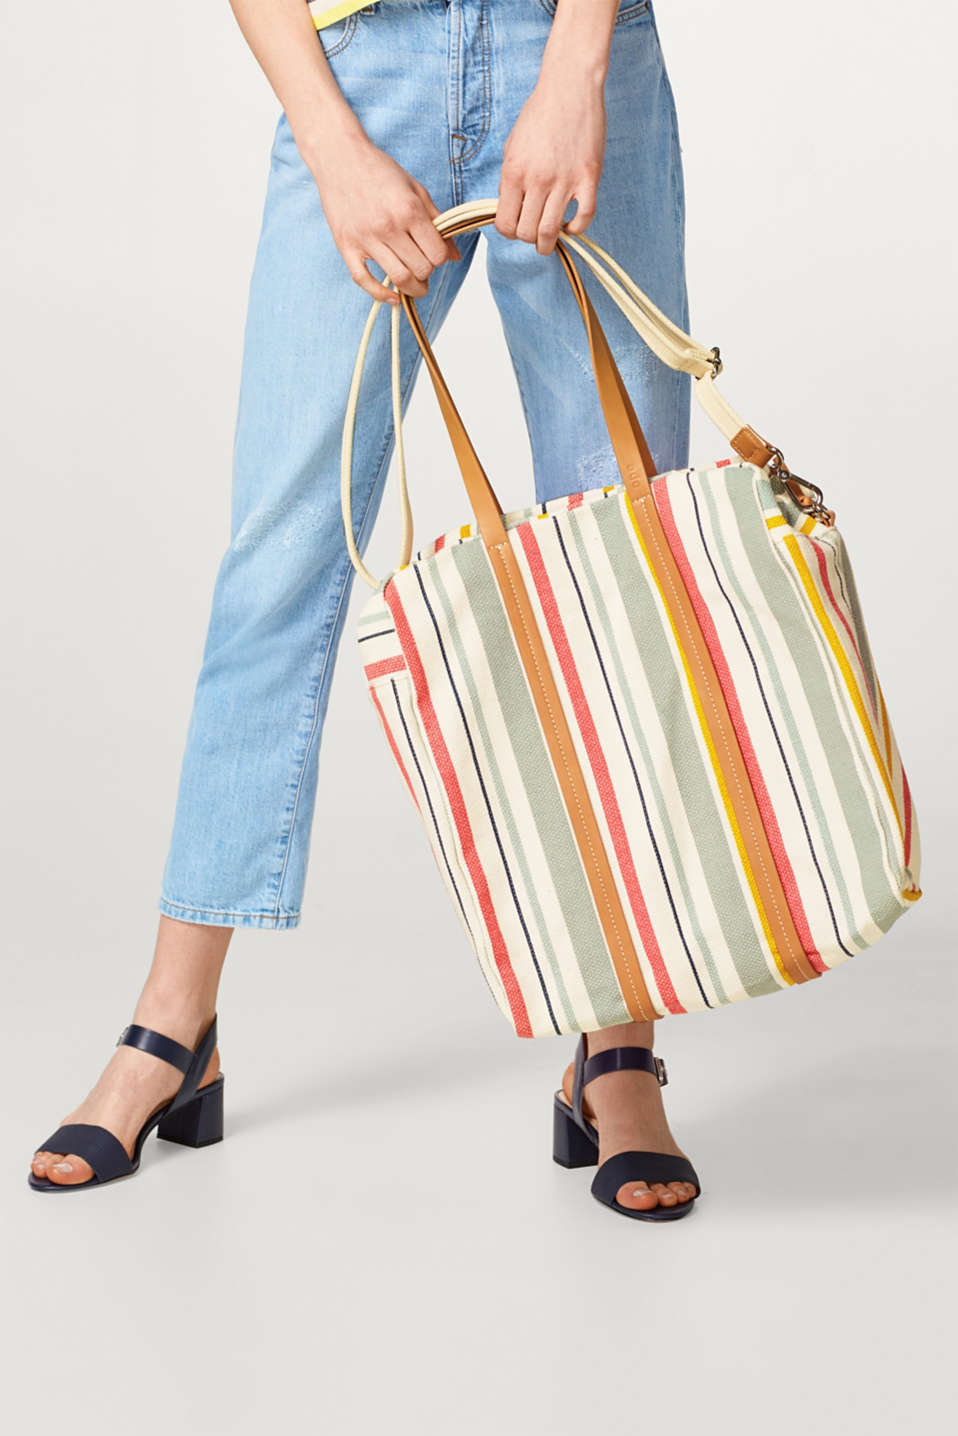 Shopper with colourful stripes, made of cotton